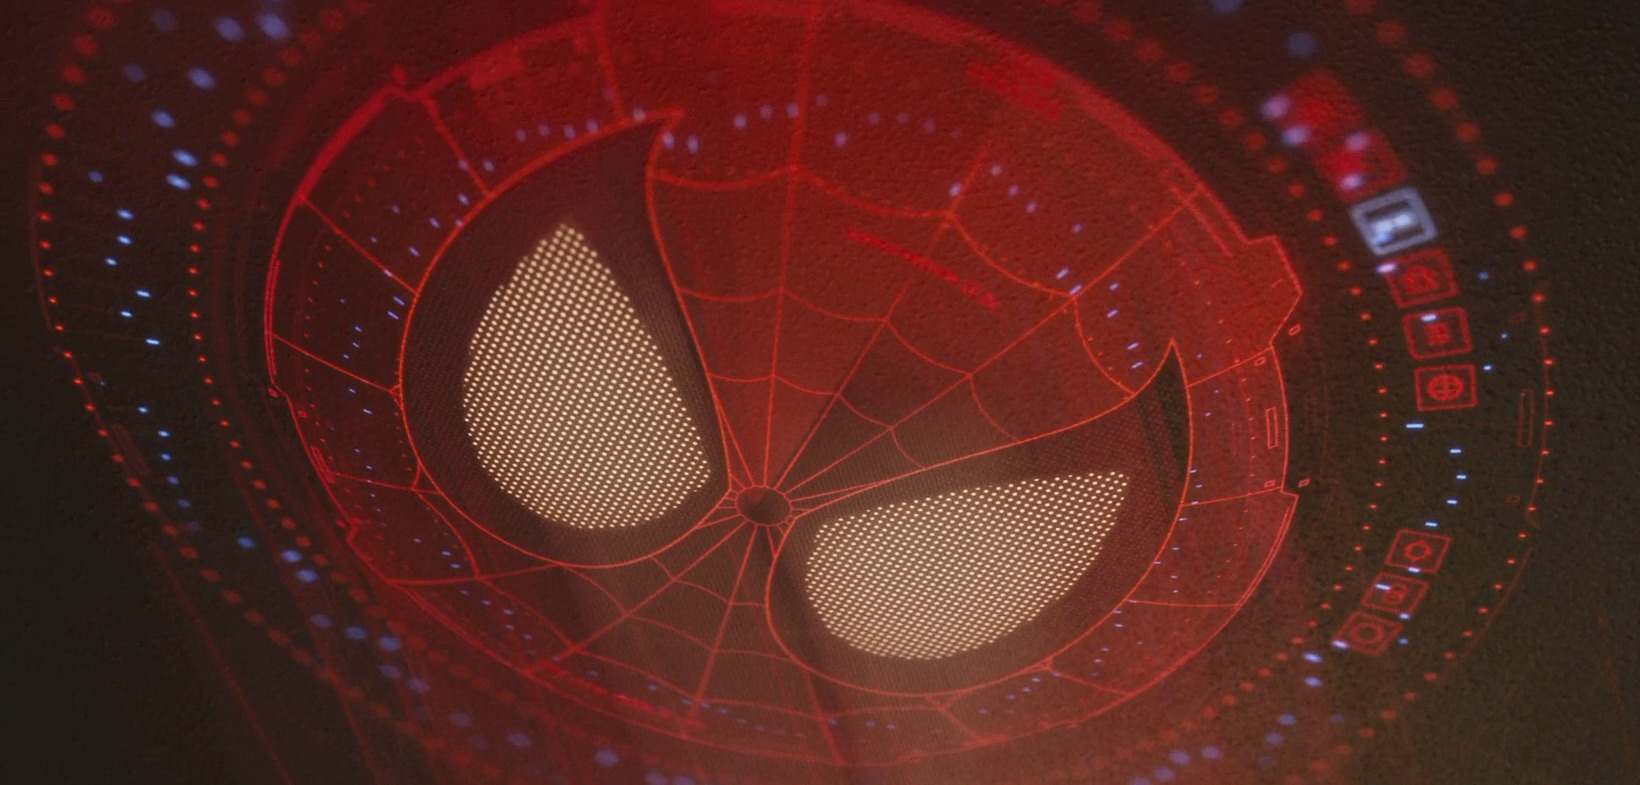 'Captain America: Civil War' Concept Art Easter Egg Teases Possible Iron Spider Suit